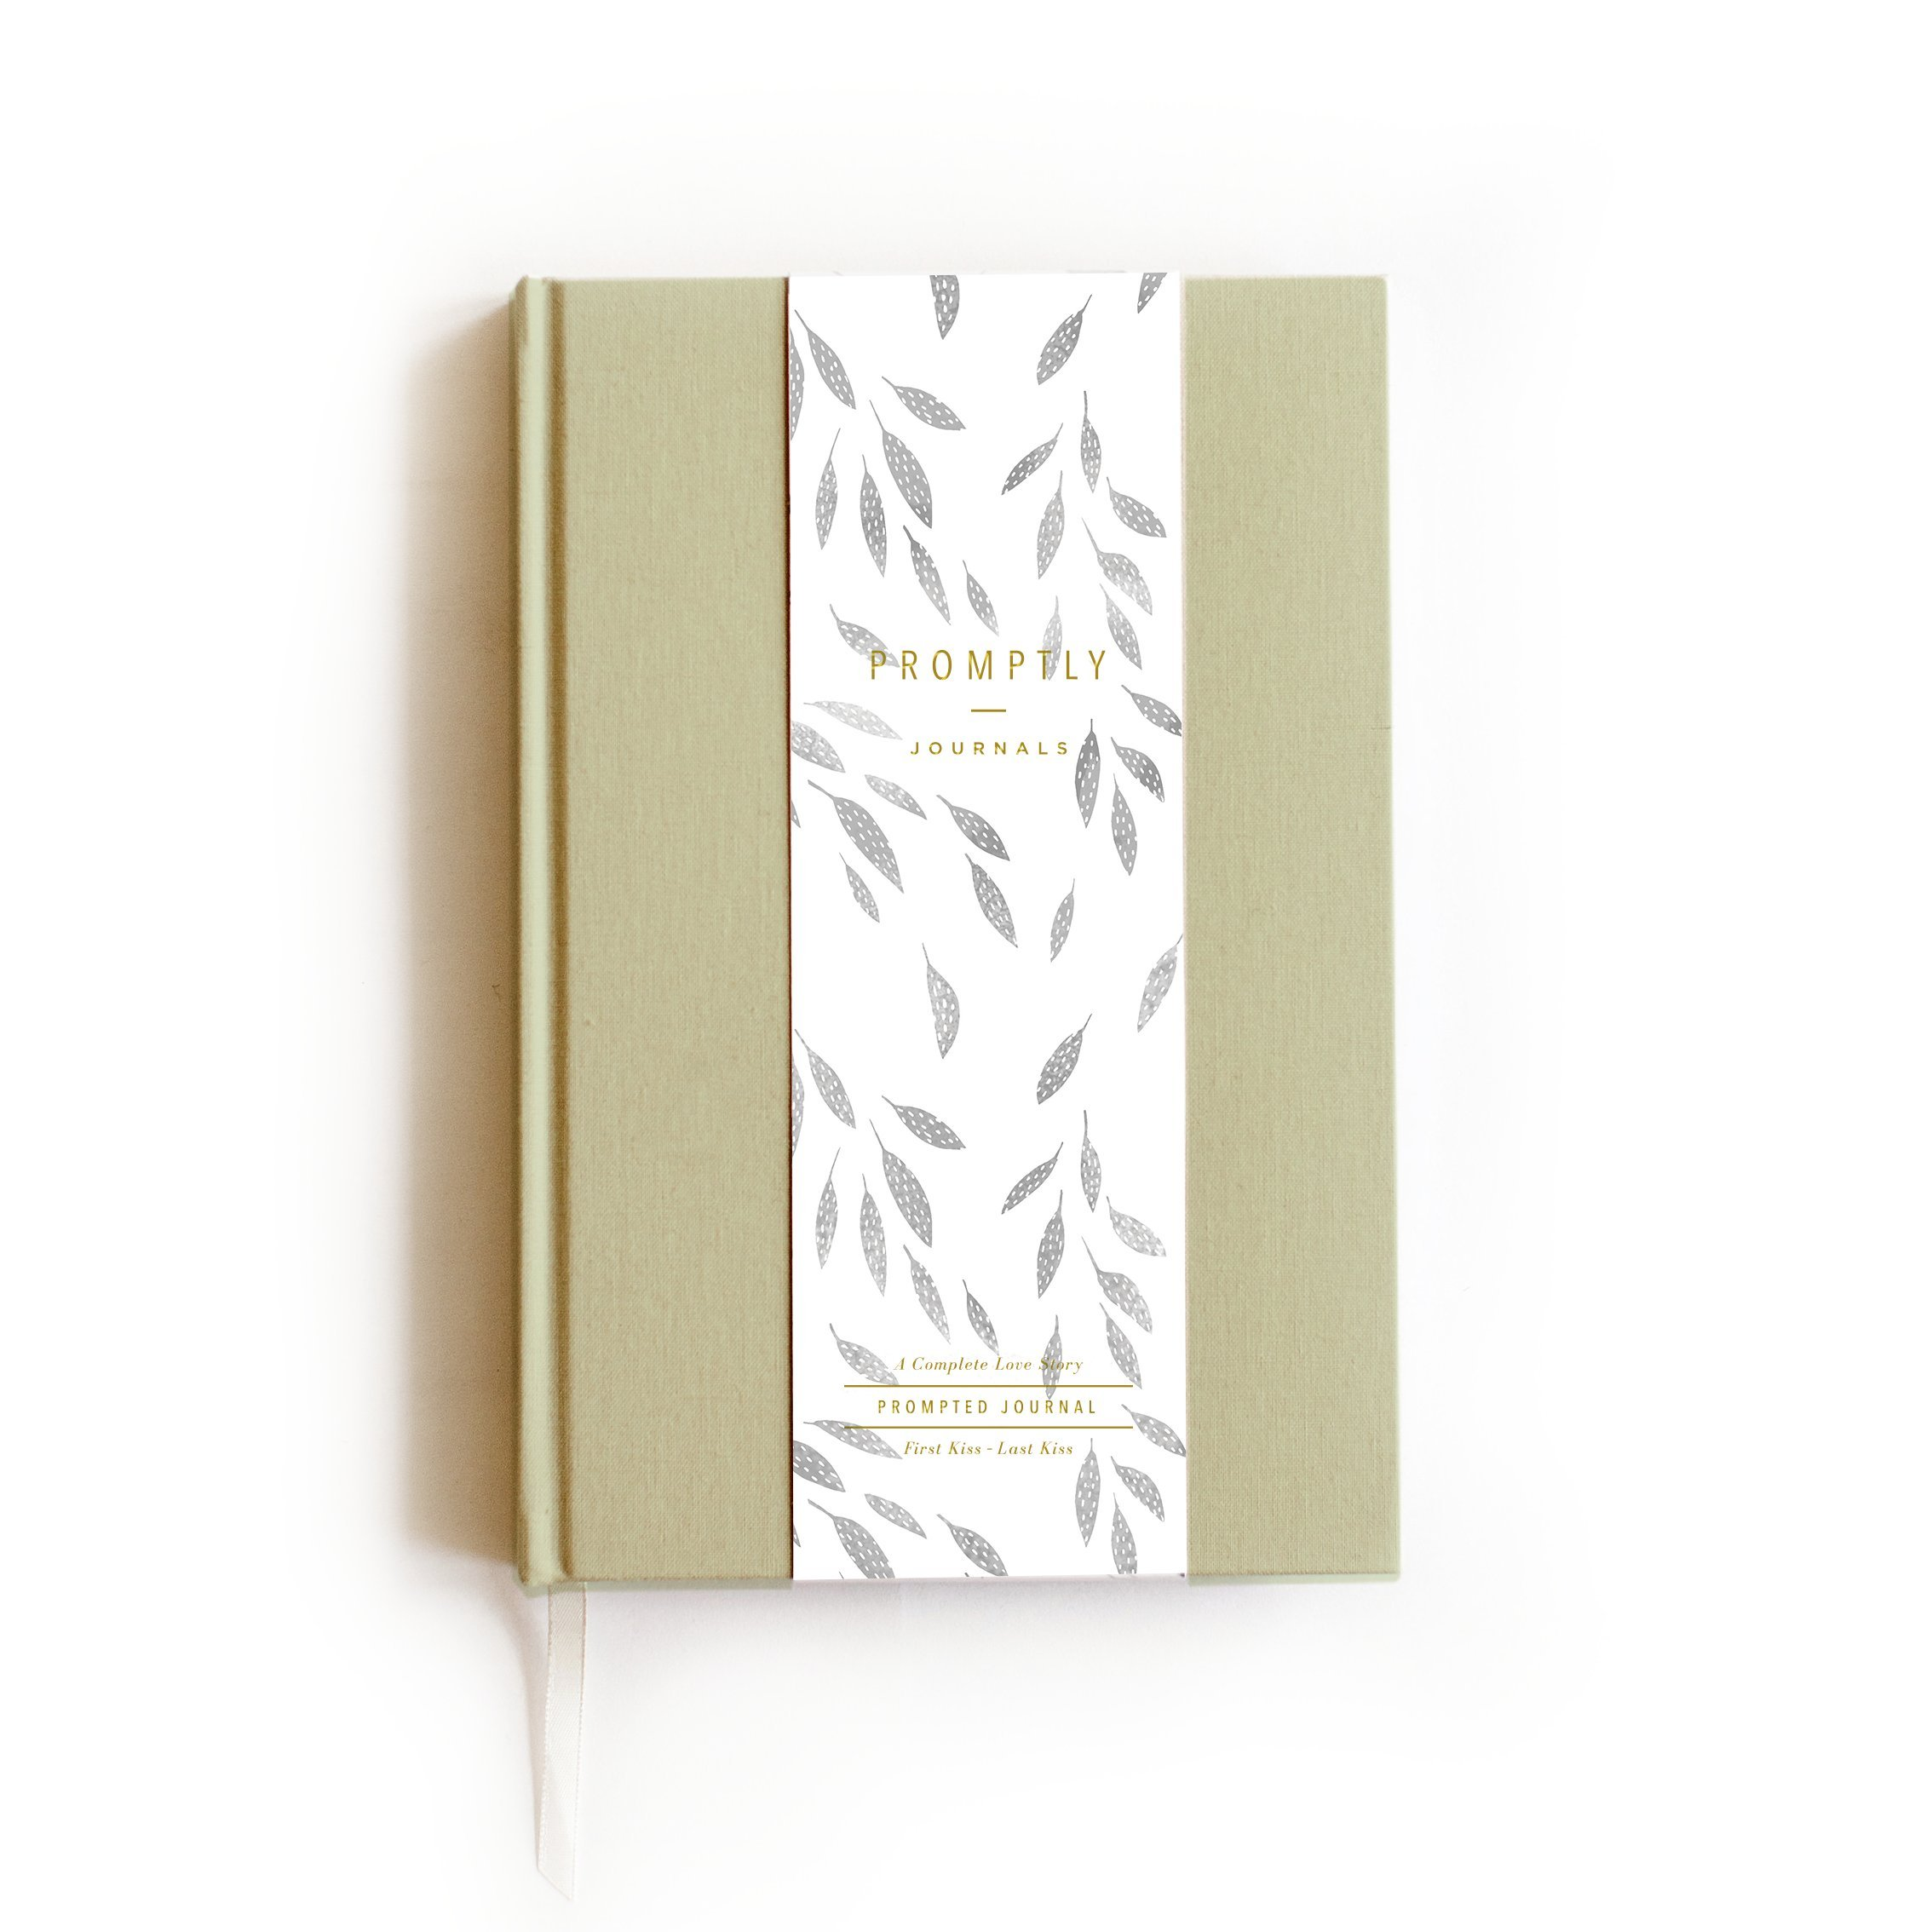 Promptly Journals - Love Story Signature Collection (Sage), Relationship & Marriage Journal, Hundreds of Meaningful Prompts, Covers from When The Couple Met Until Their 70th Wedding Anniversary